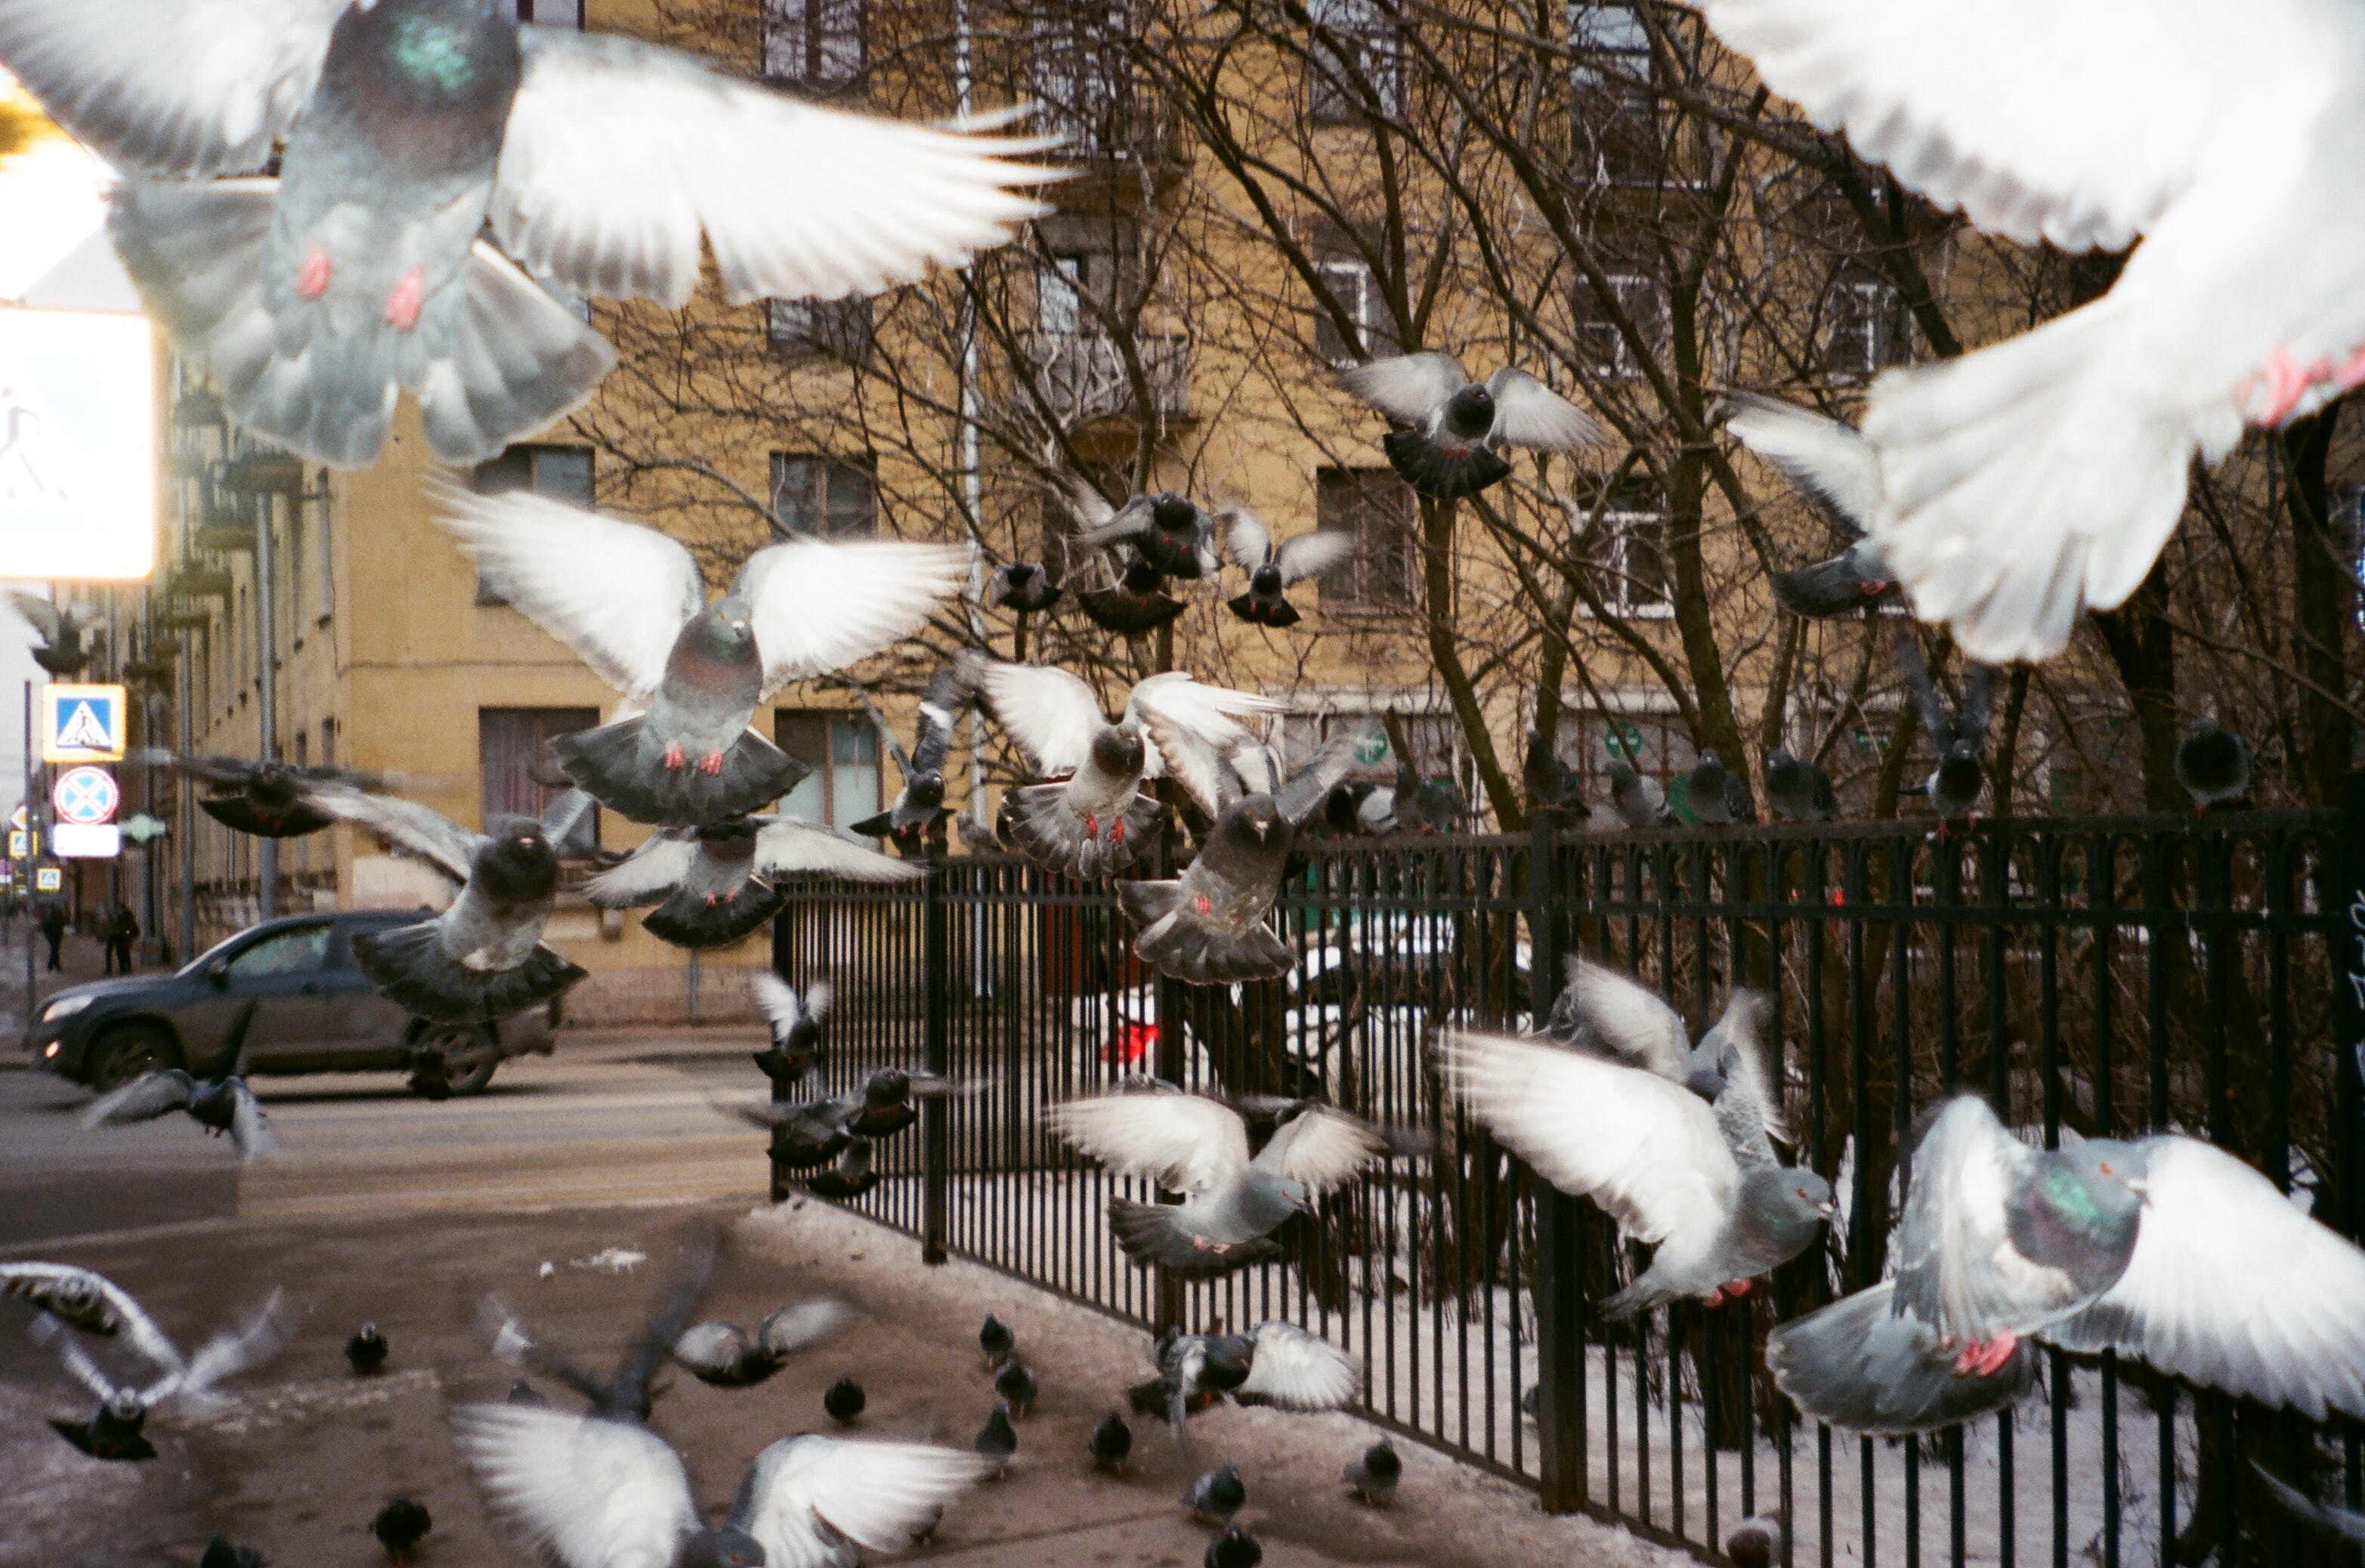 Flock of Pigeons Near Black Fence